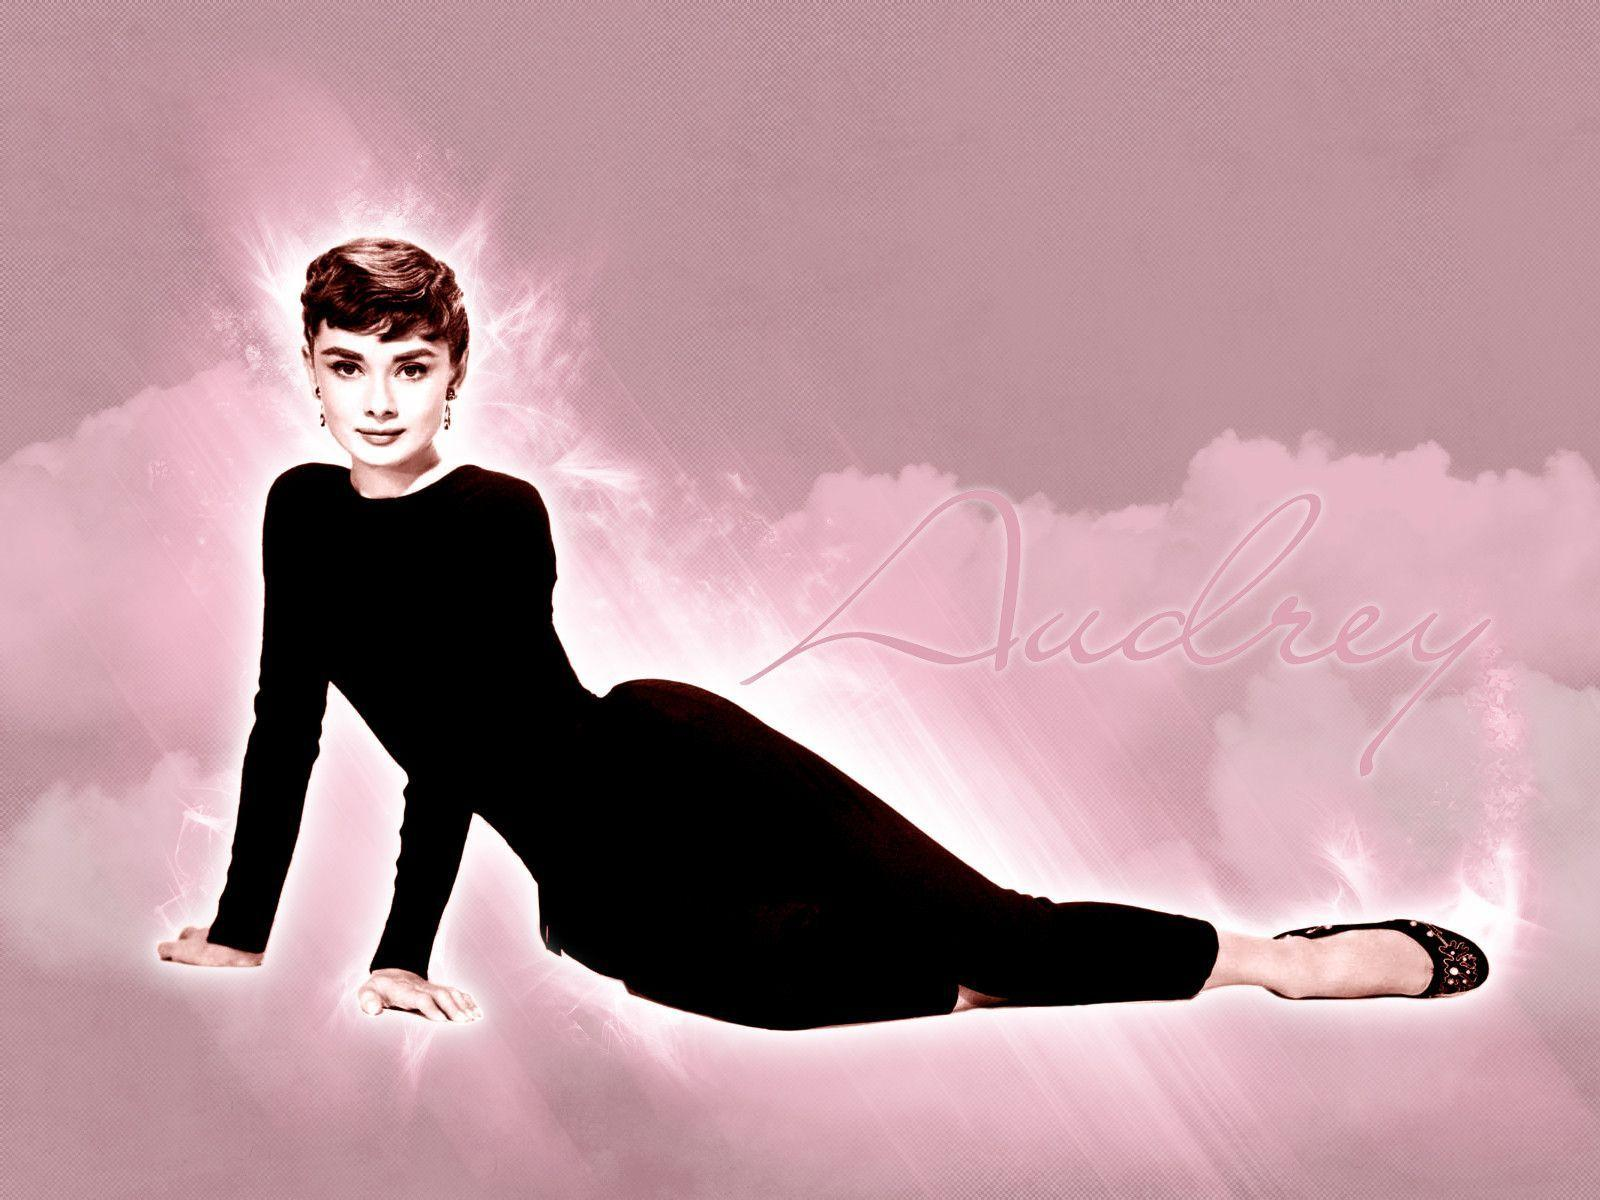 Audrey Hepburn Desktop Wallpapers 1600x1200